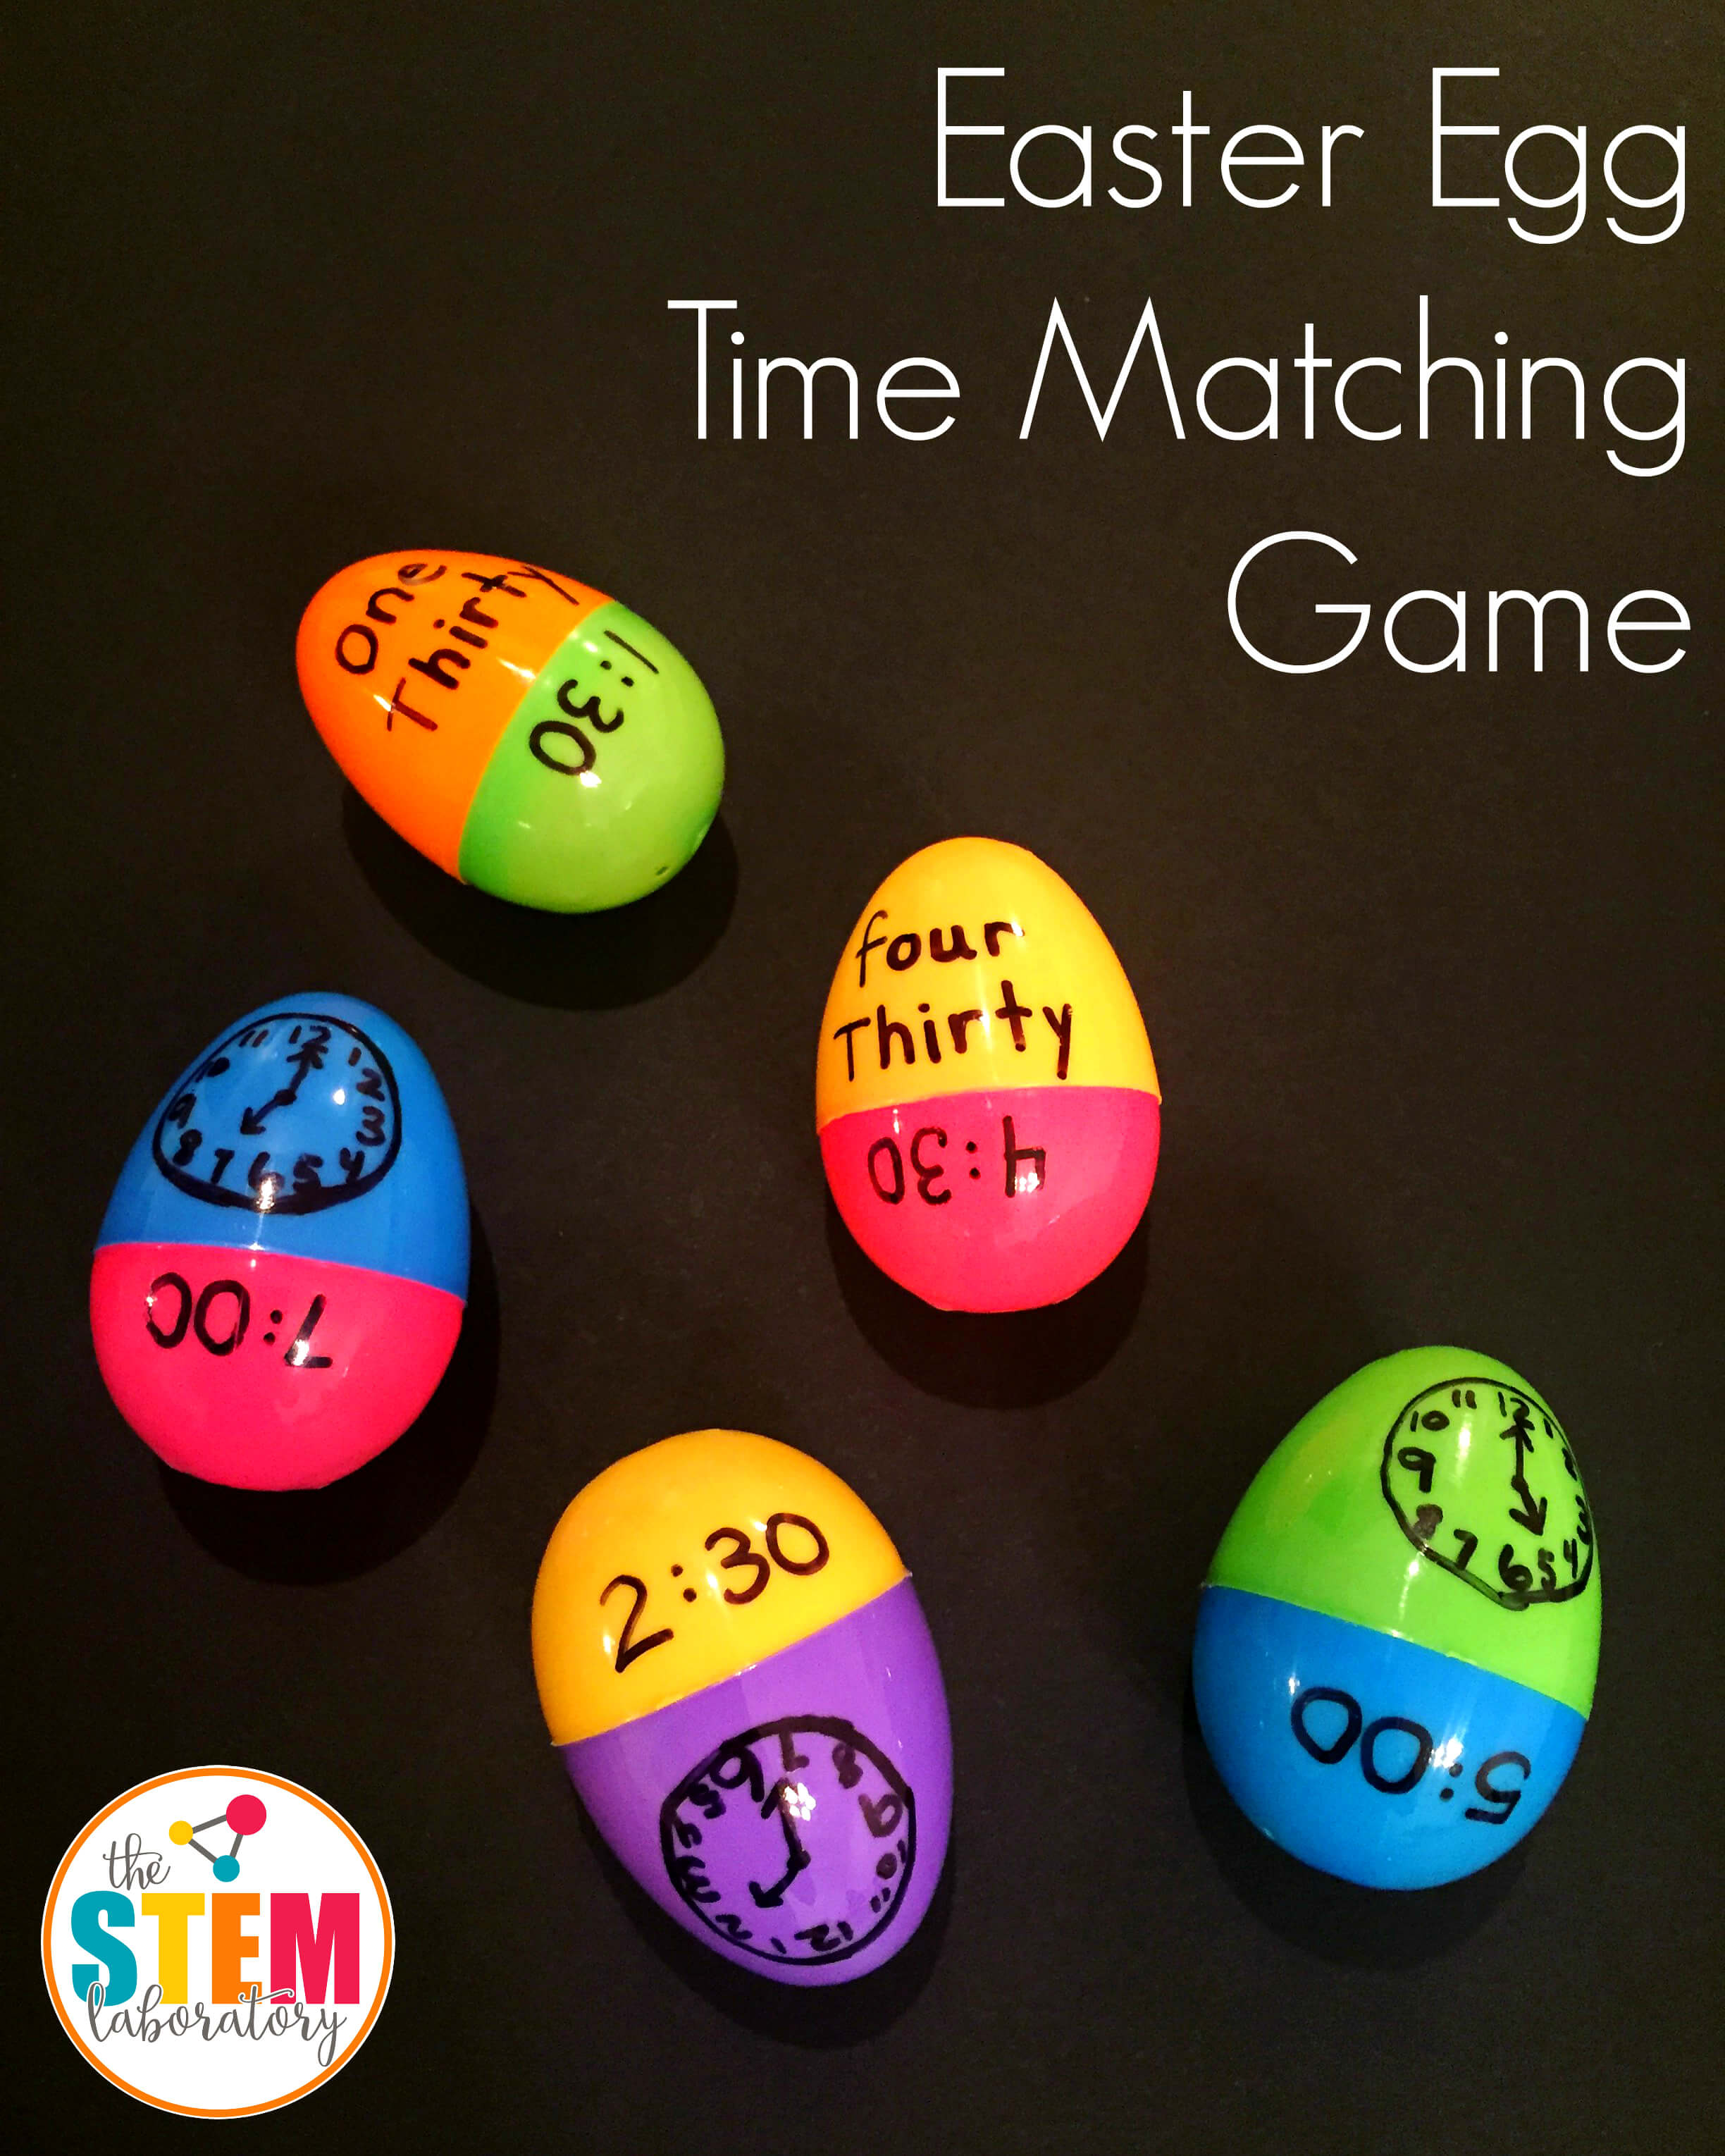 EASTER EGG TIME MATCHING GAME - The Stem Laboratory